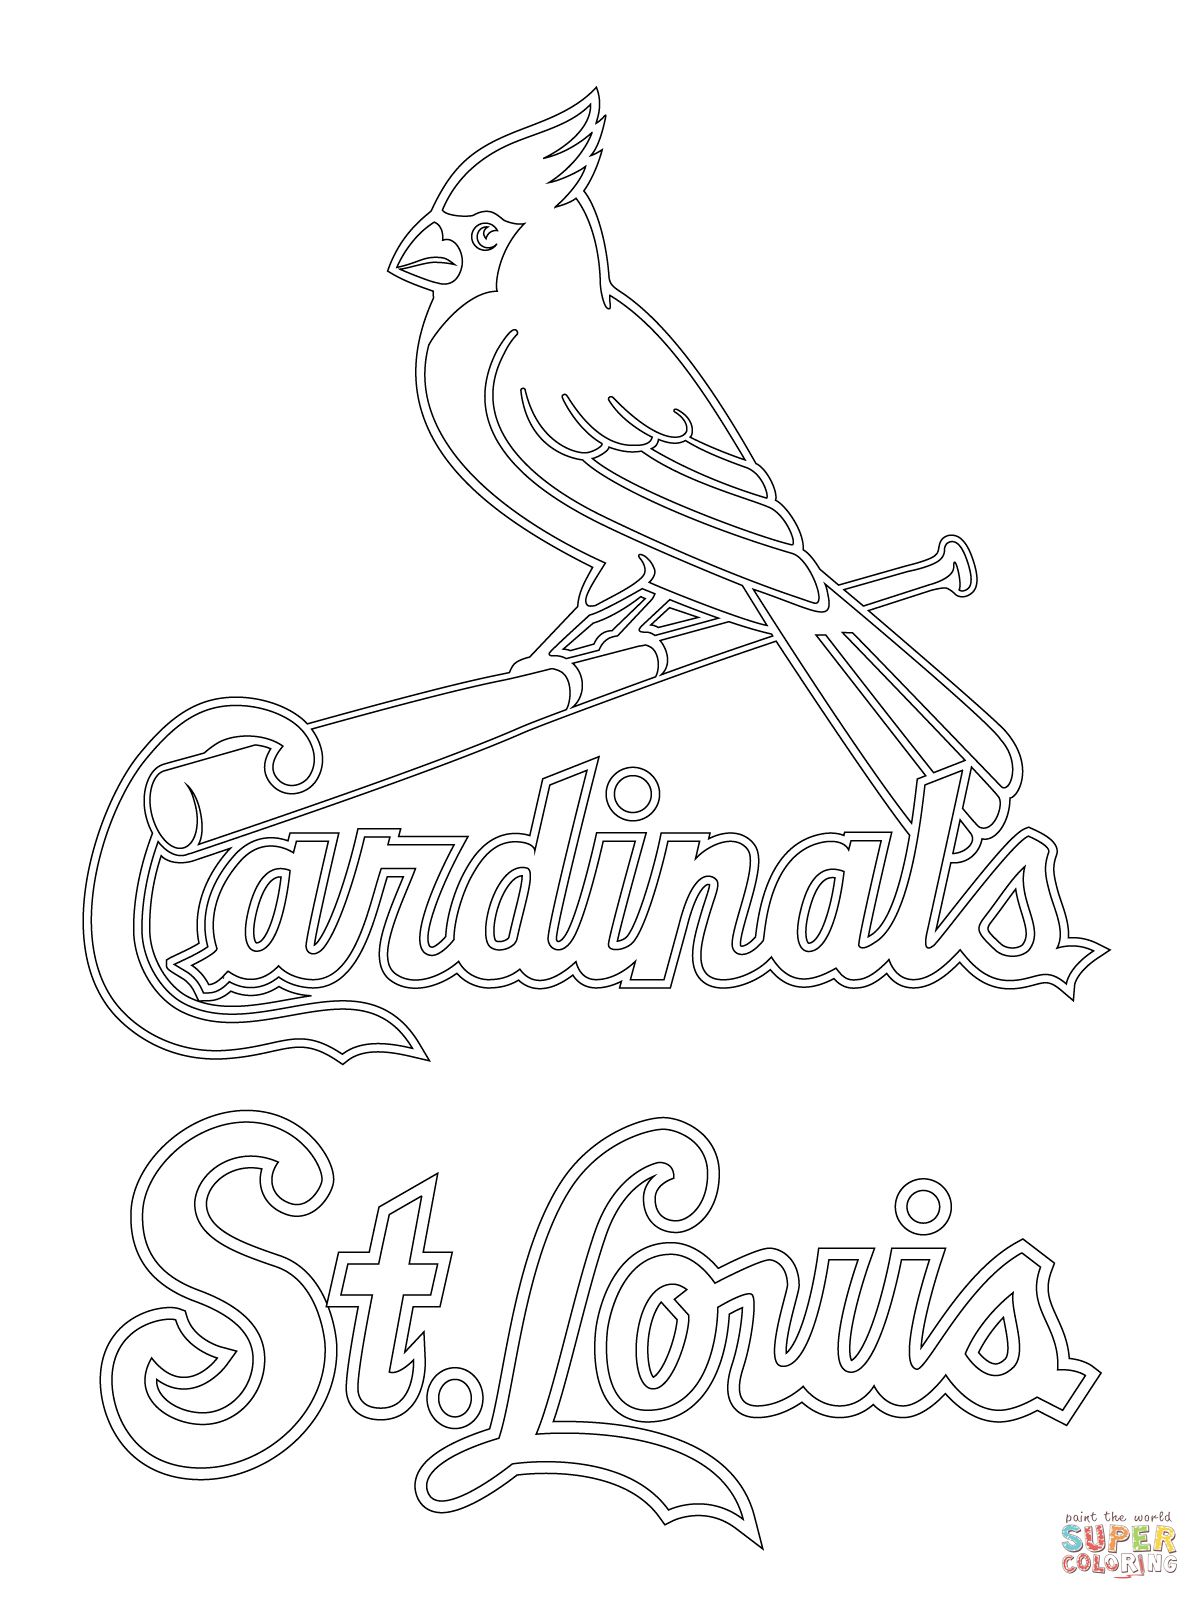 St Louis Cardinals Logo Coloring Page Baseball Coloring Pages Cardinals Baseball St Louis Cardinals Baseball